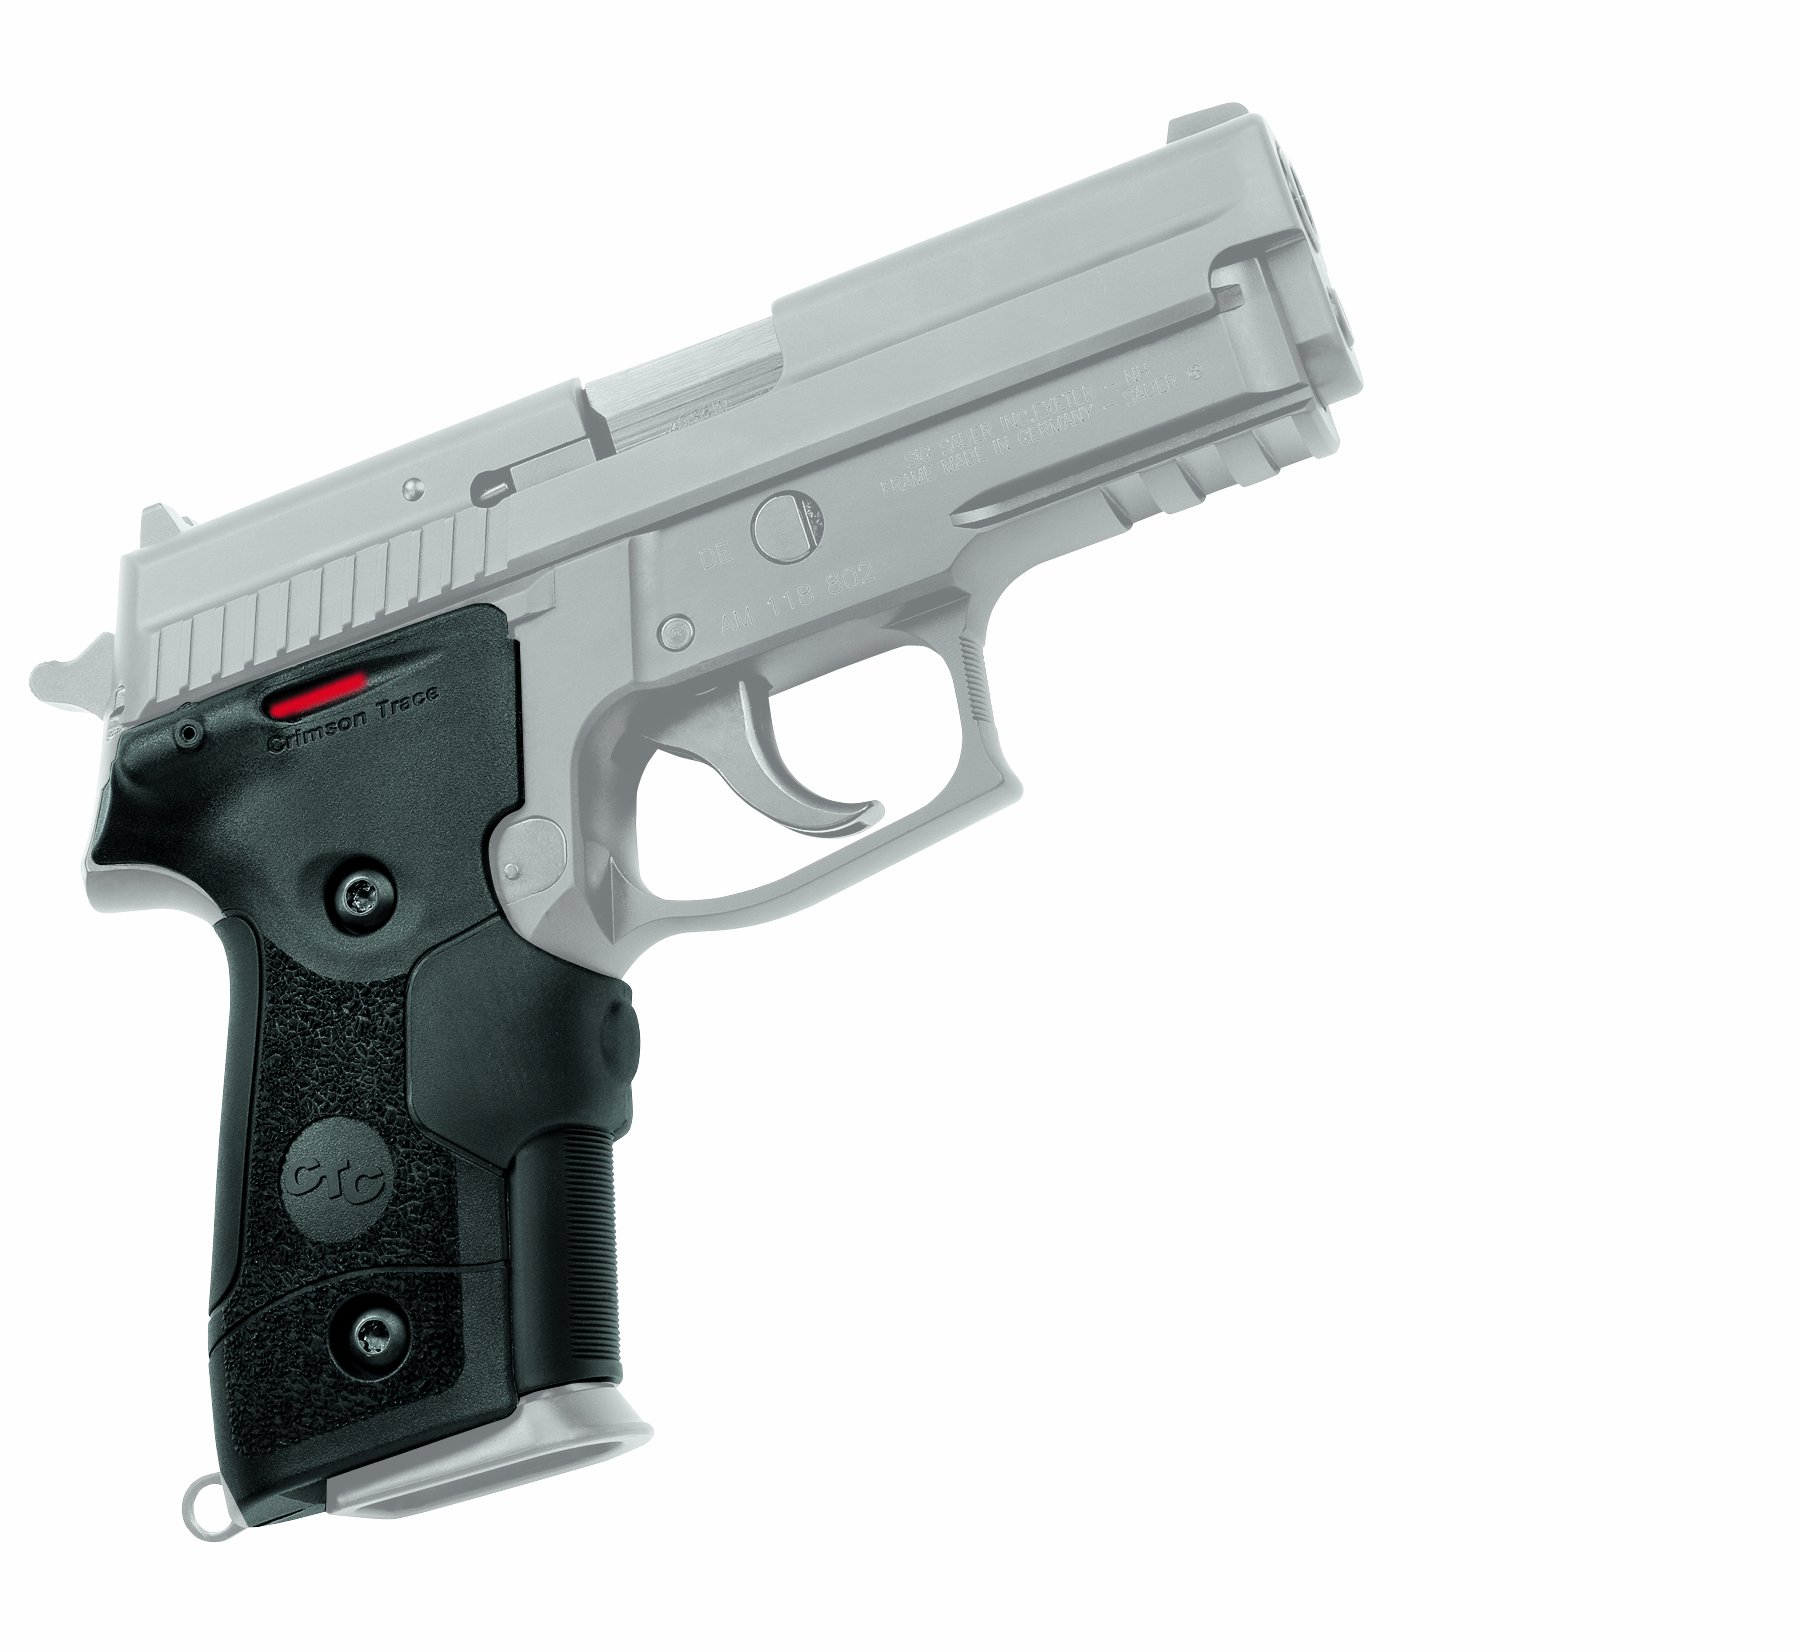 Crimson Trace LG-429 Lasergrips Red Laser Sight Grips for Sig Sauer P228/P229 Pistols